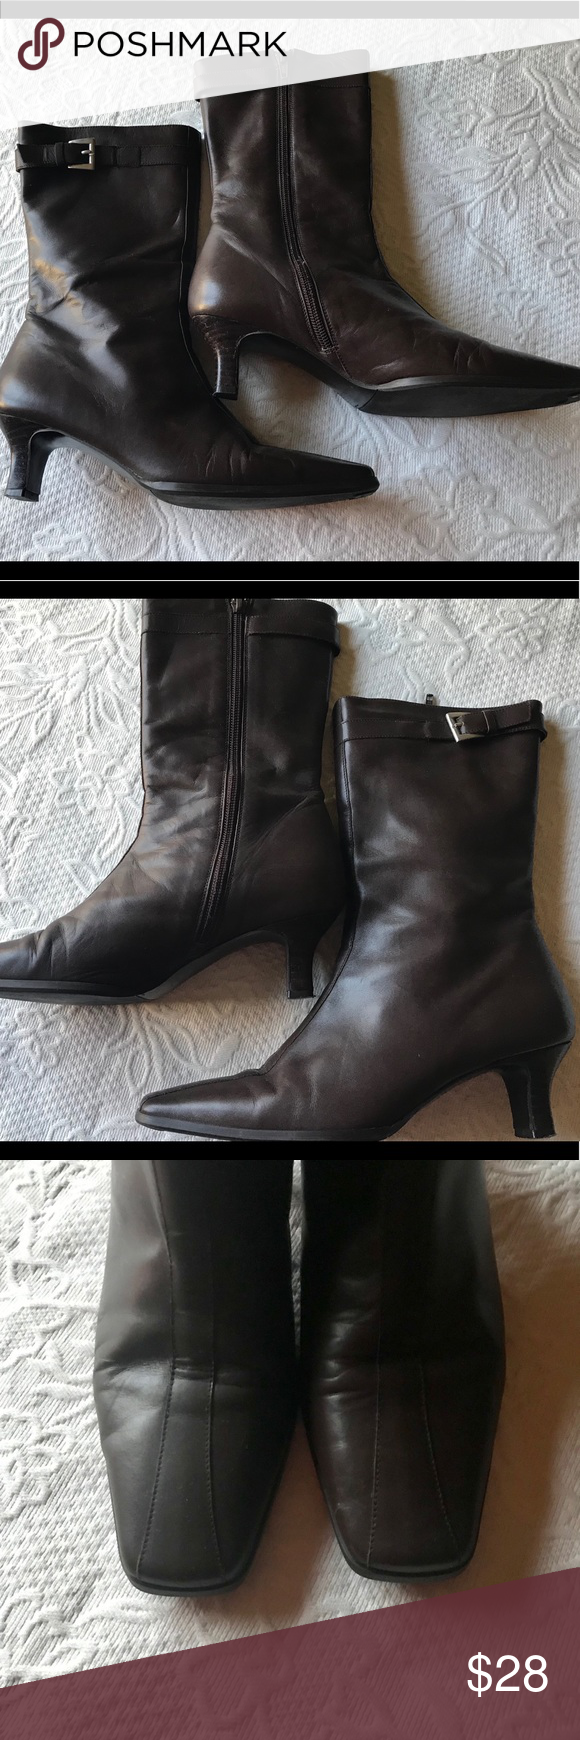 04f66c327464 Talbots Calf Length Boots Talbots Leather size 7 medium Chocolate Brown  Calf Length Boots. 1.5